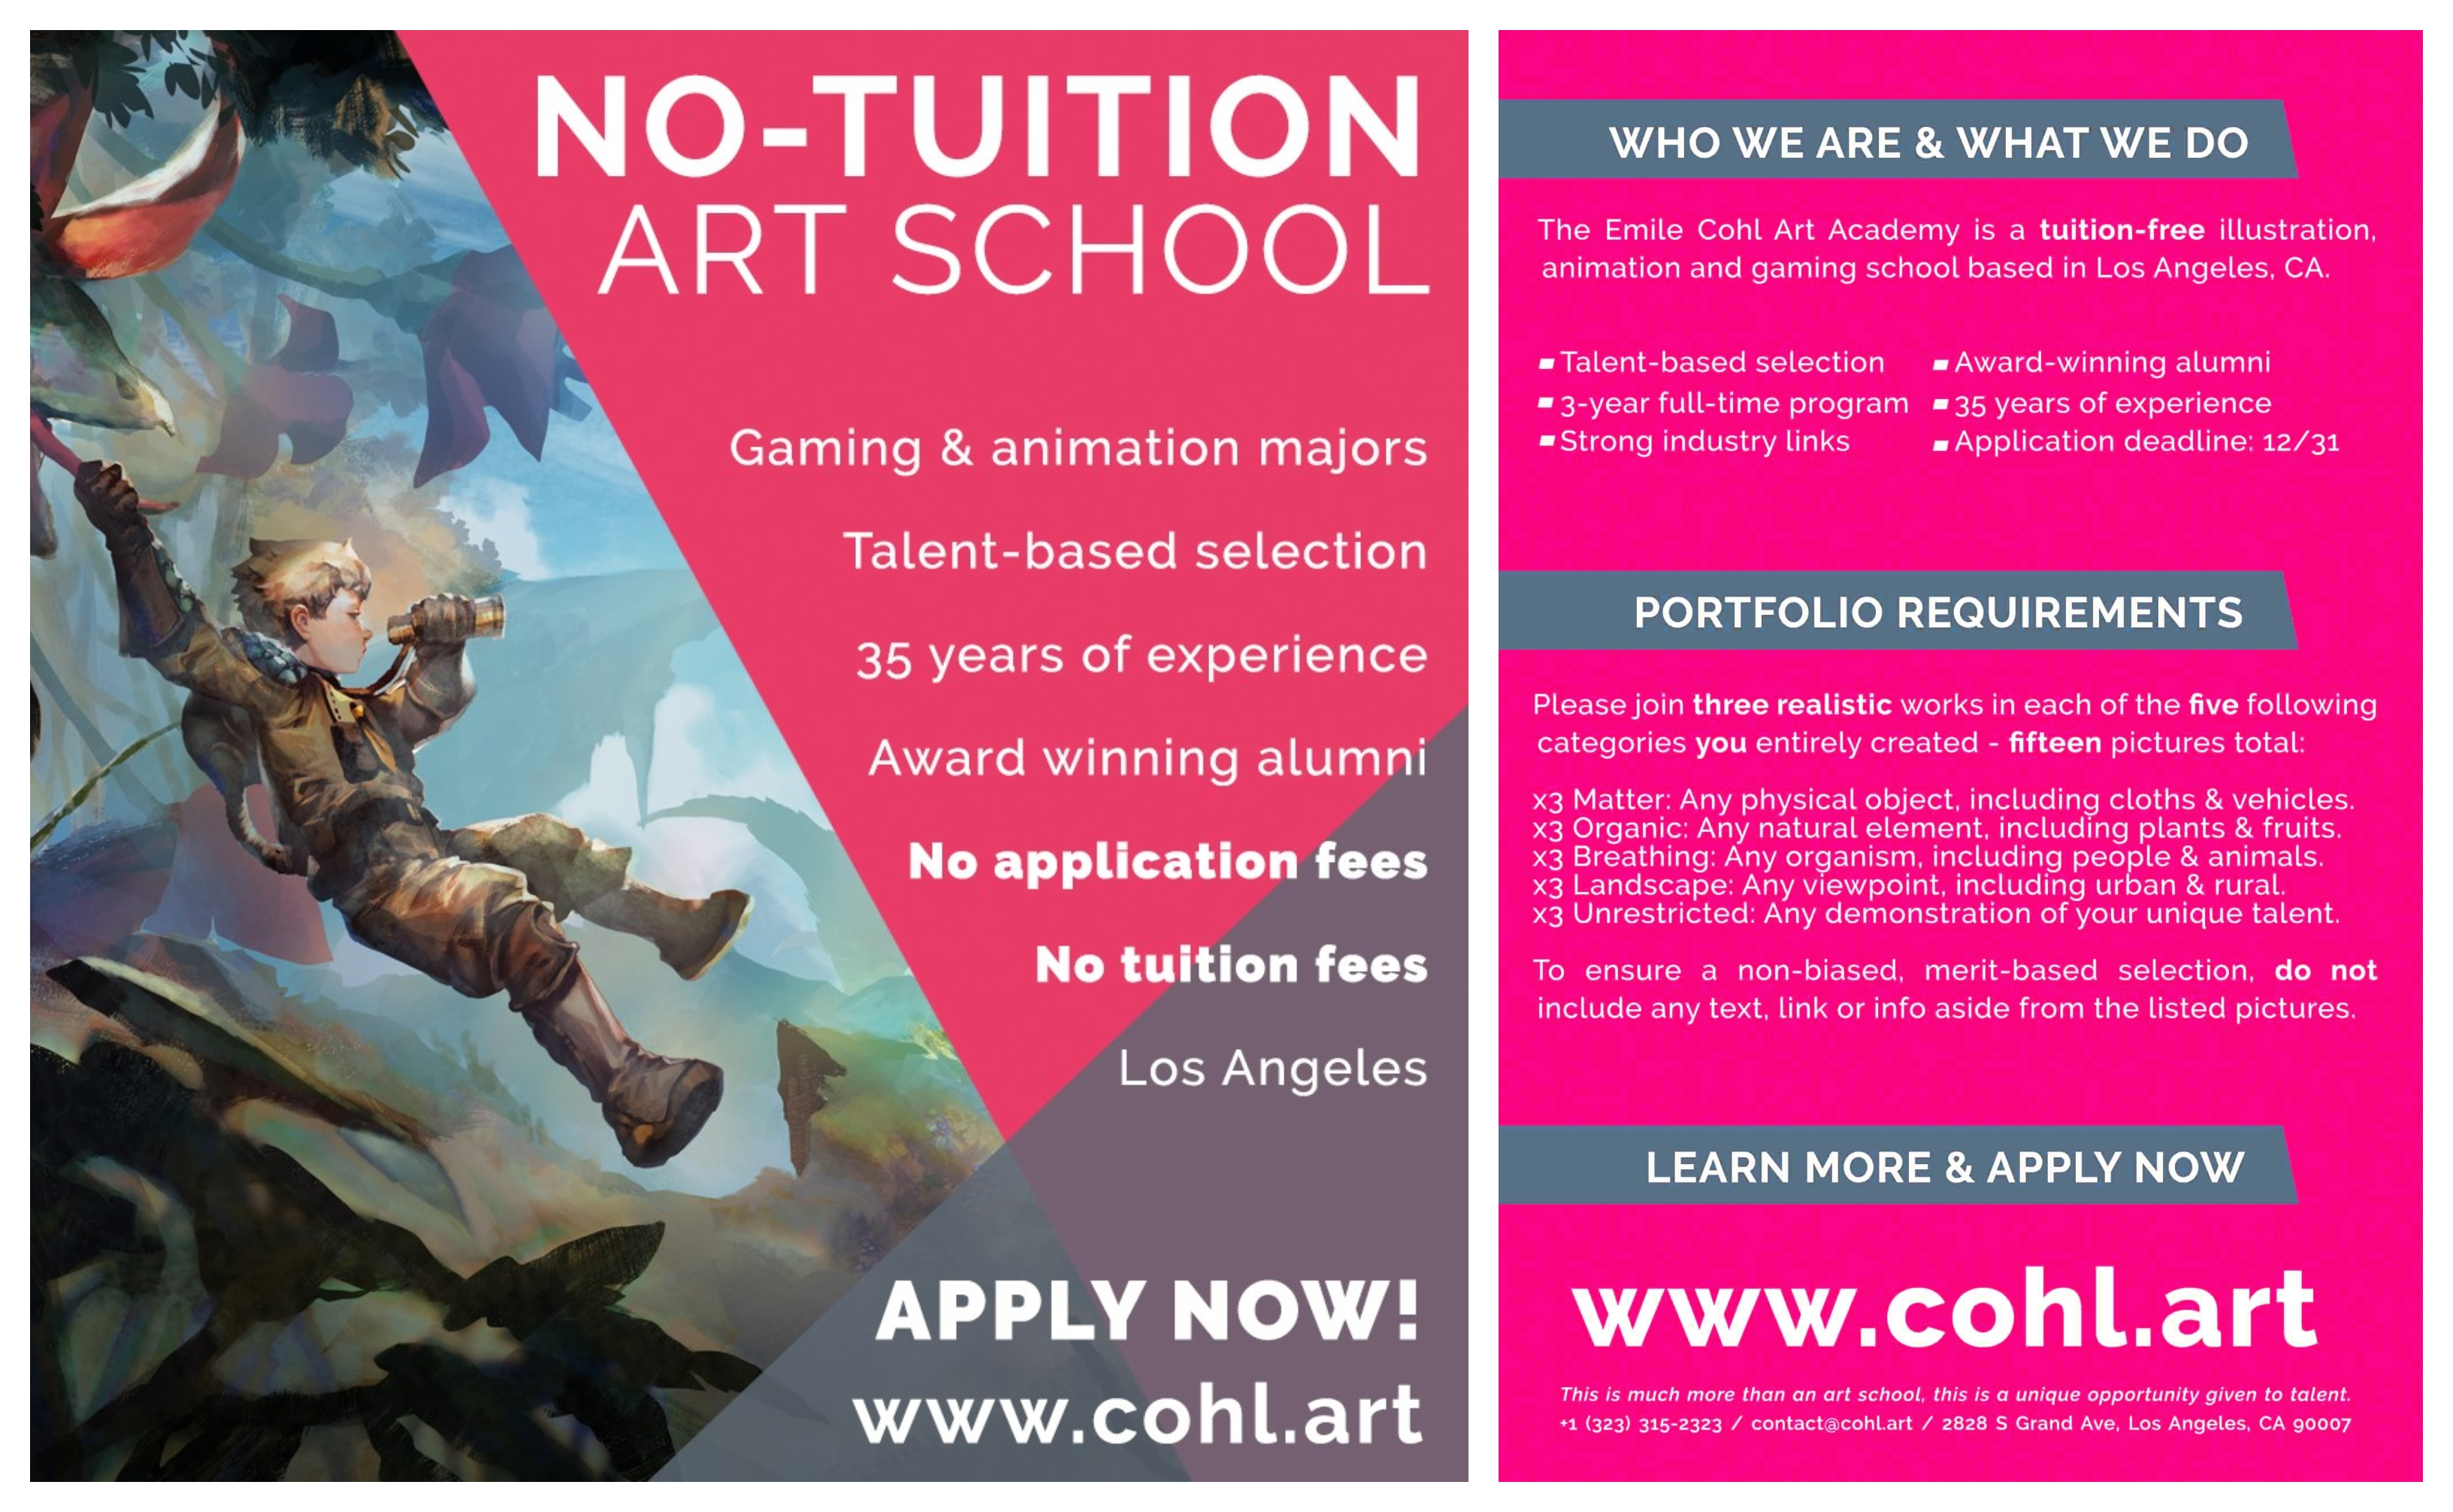 No-Tuition Art School